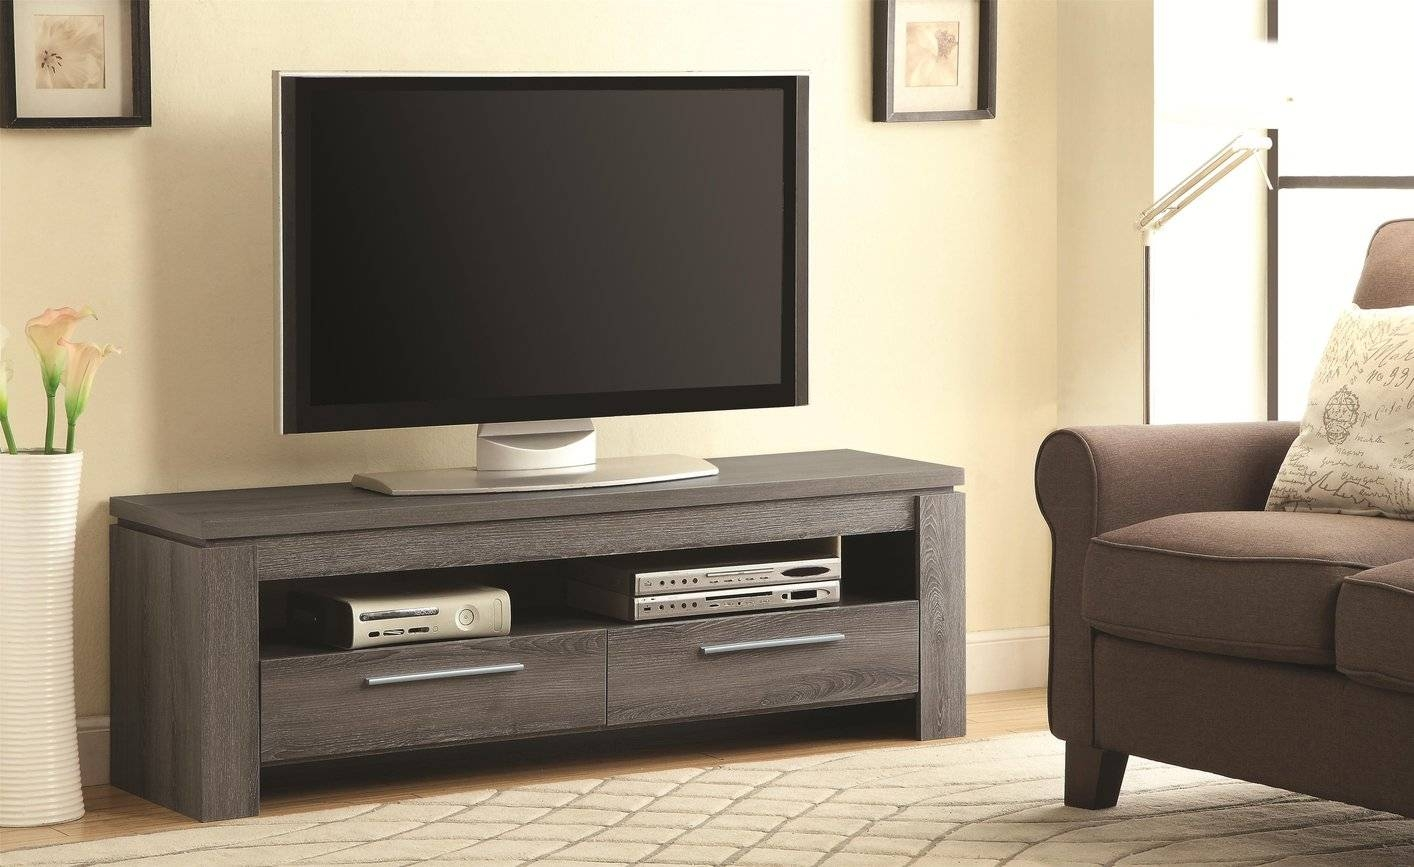 Grey Wood Tv Stand - Steal-A-Sofa Furniture Outlet Los Angeles Ca intended for Grey Wood Tv Stands (Image 4 of 15)